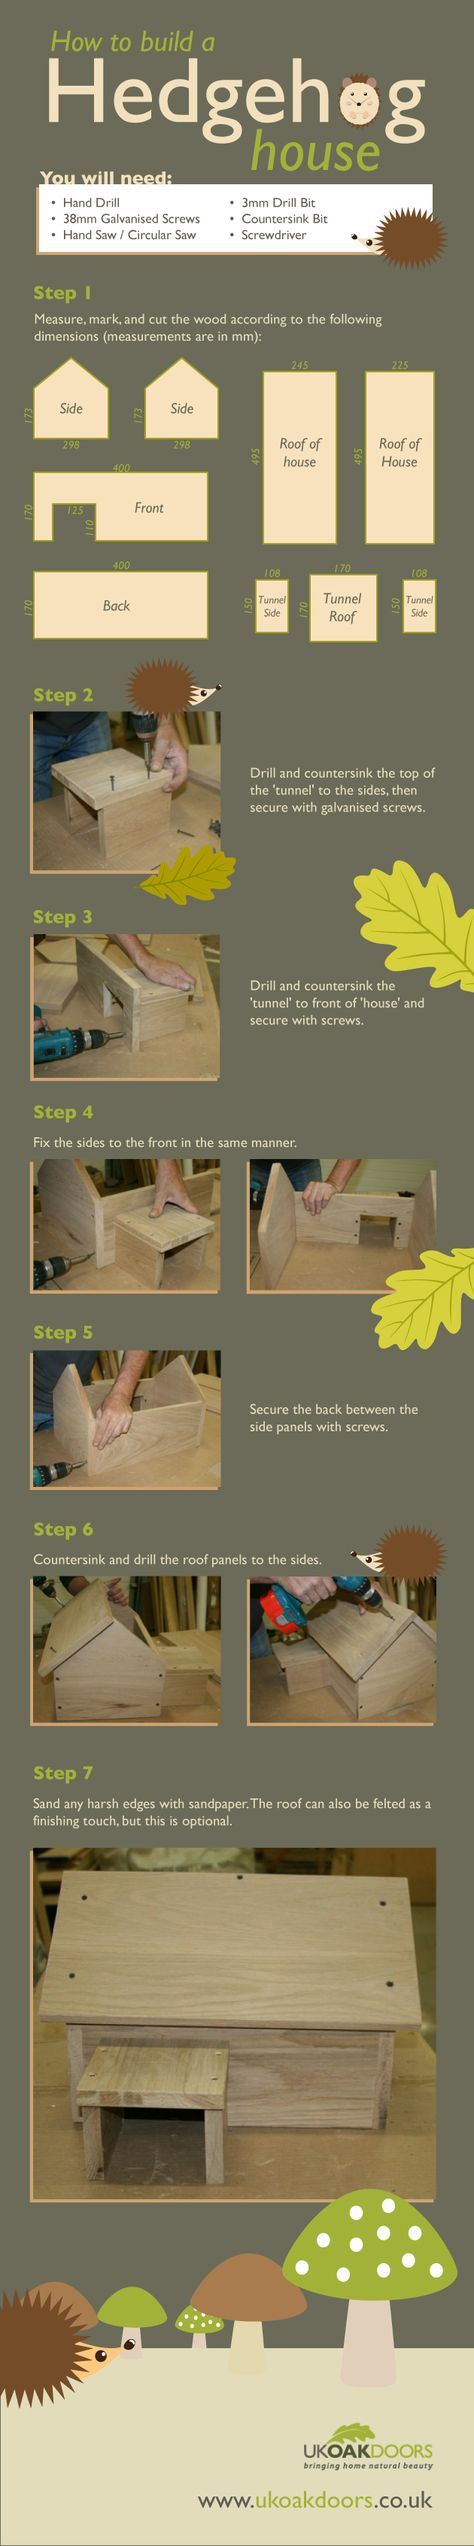 A DIY guide to building a hedgehog house in seven easy steps - with photos #hedgehogs #wildlife #DIY #infographics